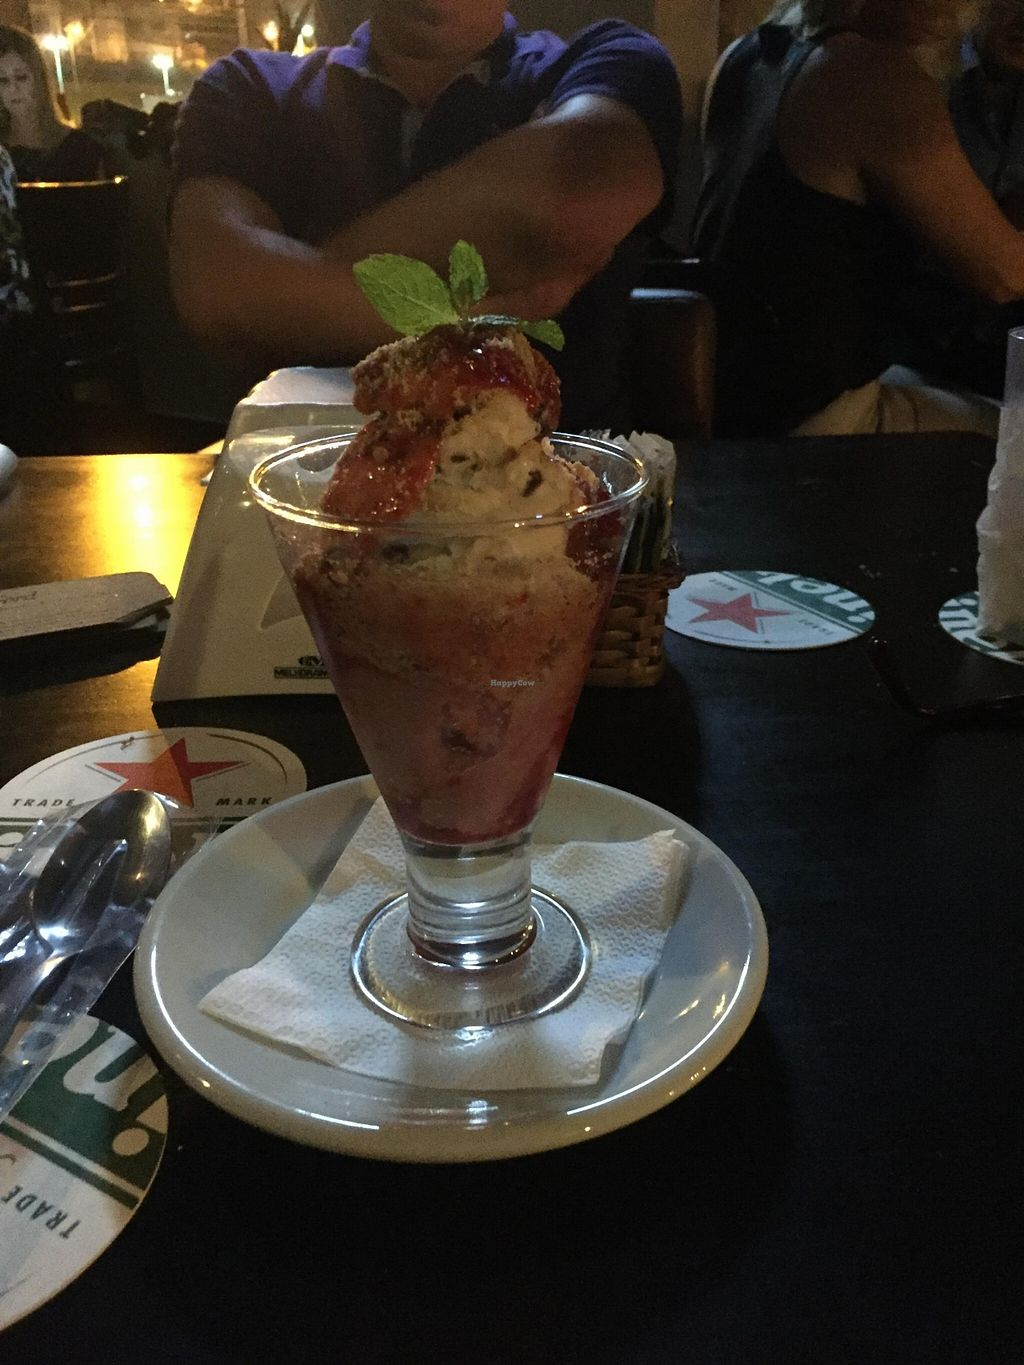 """Photo of Kingsford Pub  by <a href=""""/members/profile/Paolla"""">Paolla</a> <br/>Vegan ice cream <br/> January 10, 2016  - <a href='/contact/abuse/image/63102/131945'>Report</a>"""